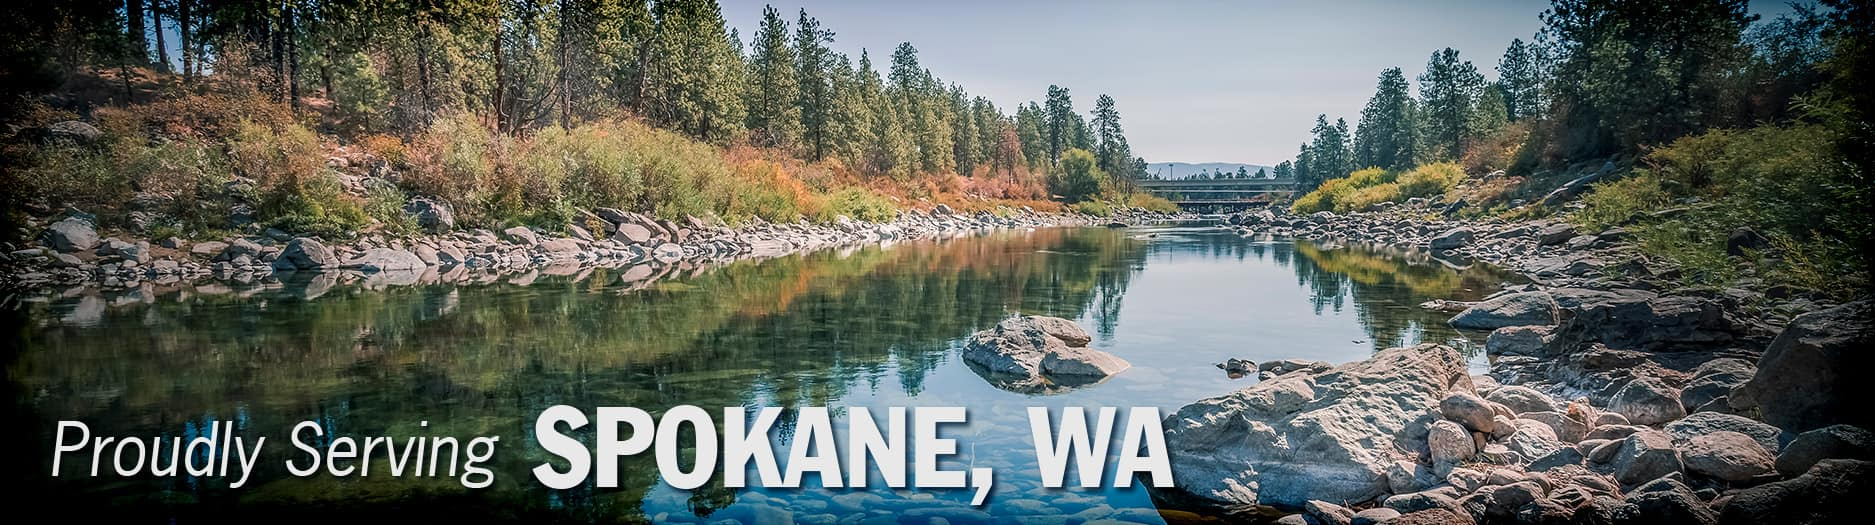 Proudly Serving Spokane, Washington